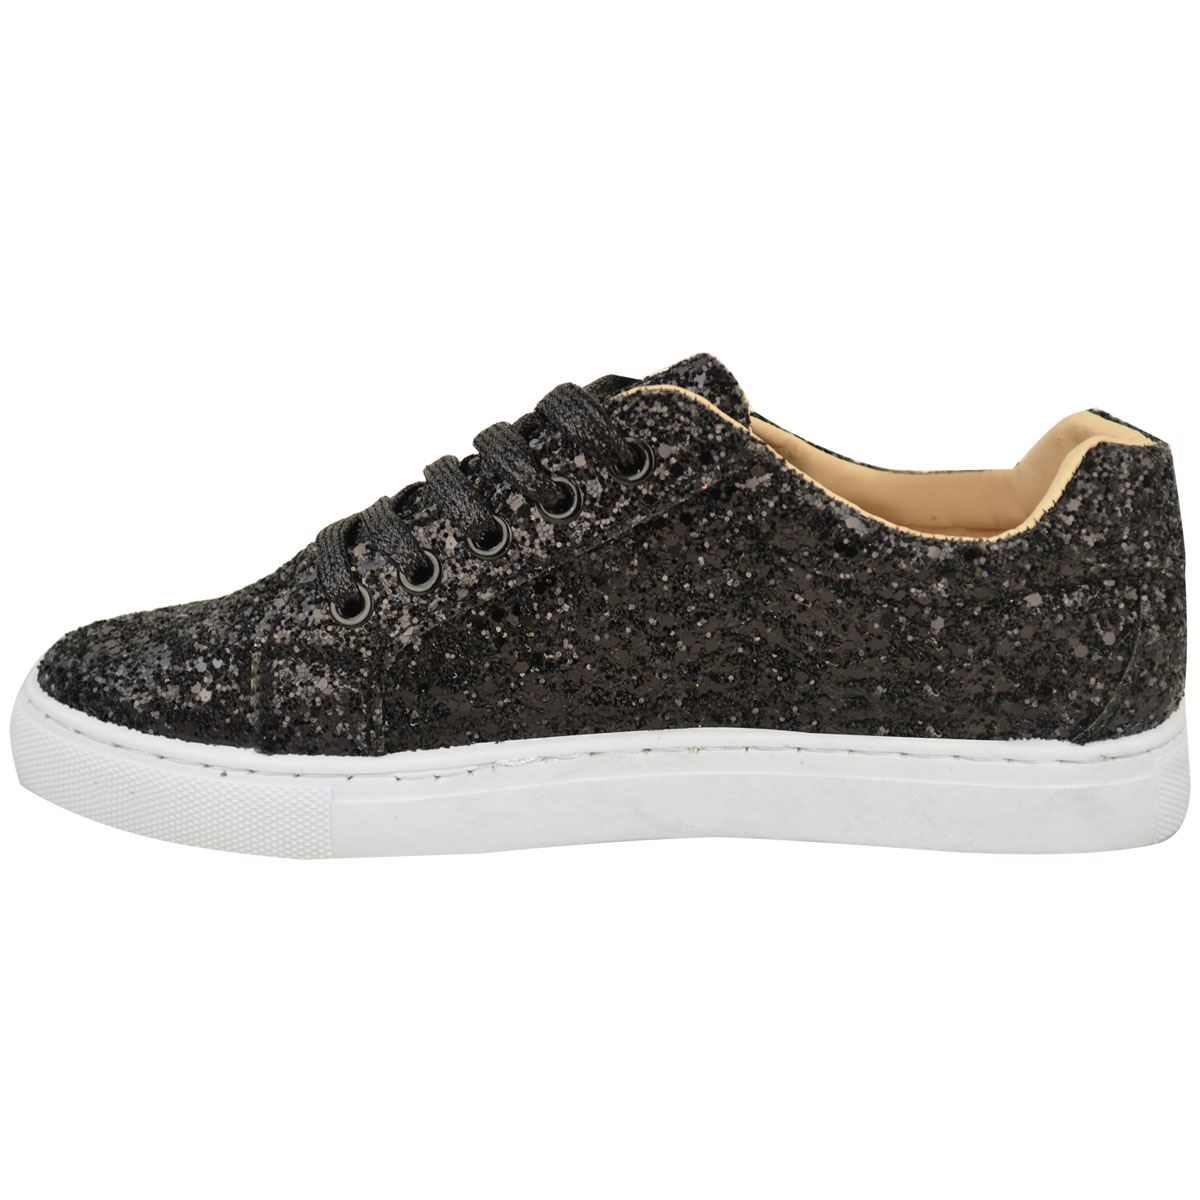 Womens Ladies Lace Up Glitter Sparkly Trainers Sneakers Gym Pumps ... 451e4cefe